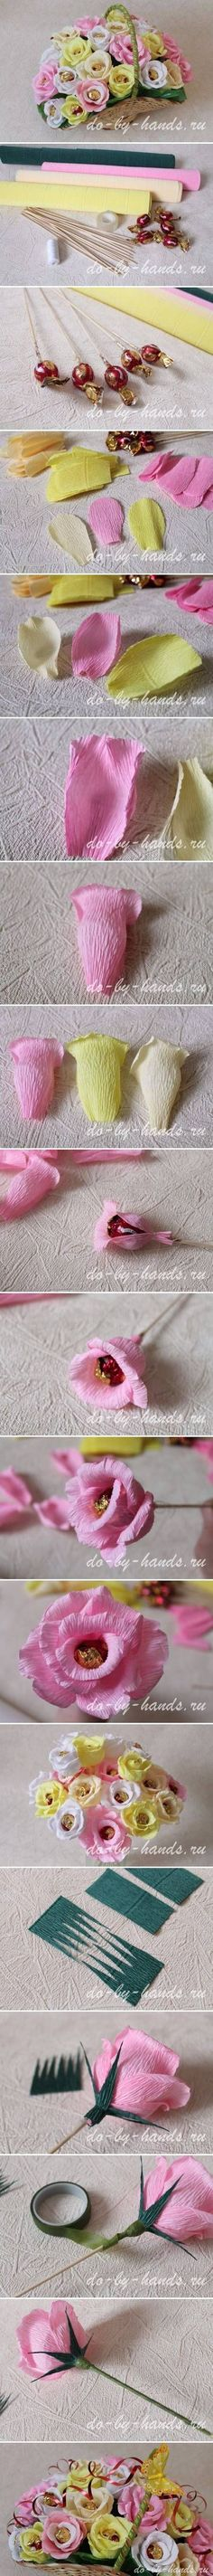 DIY Paper Roses with Candy